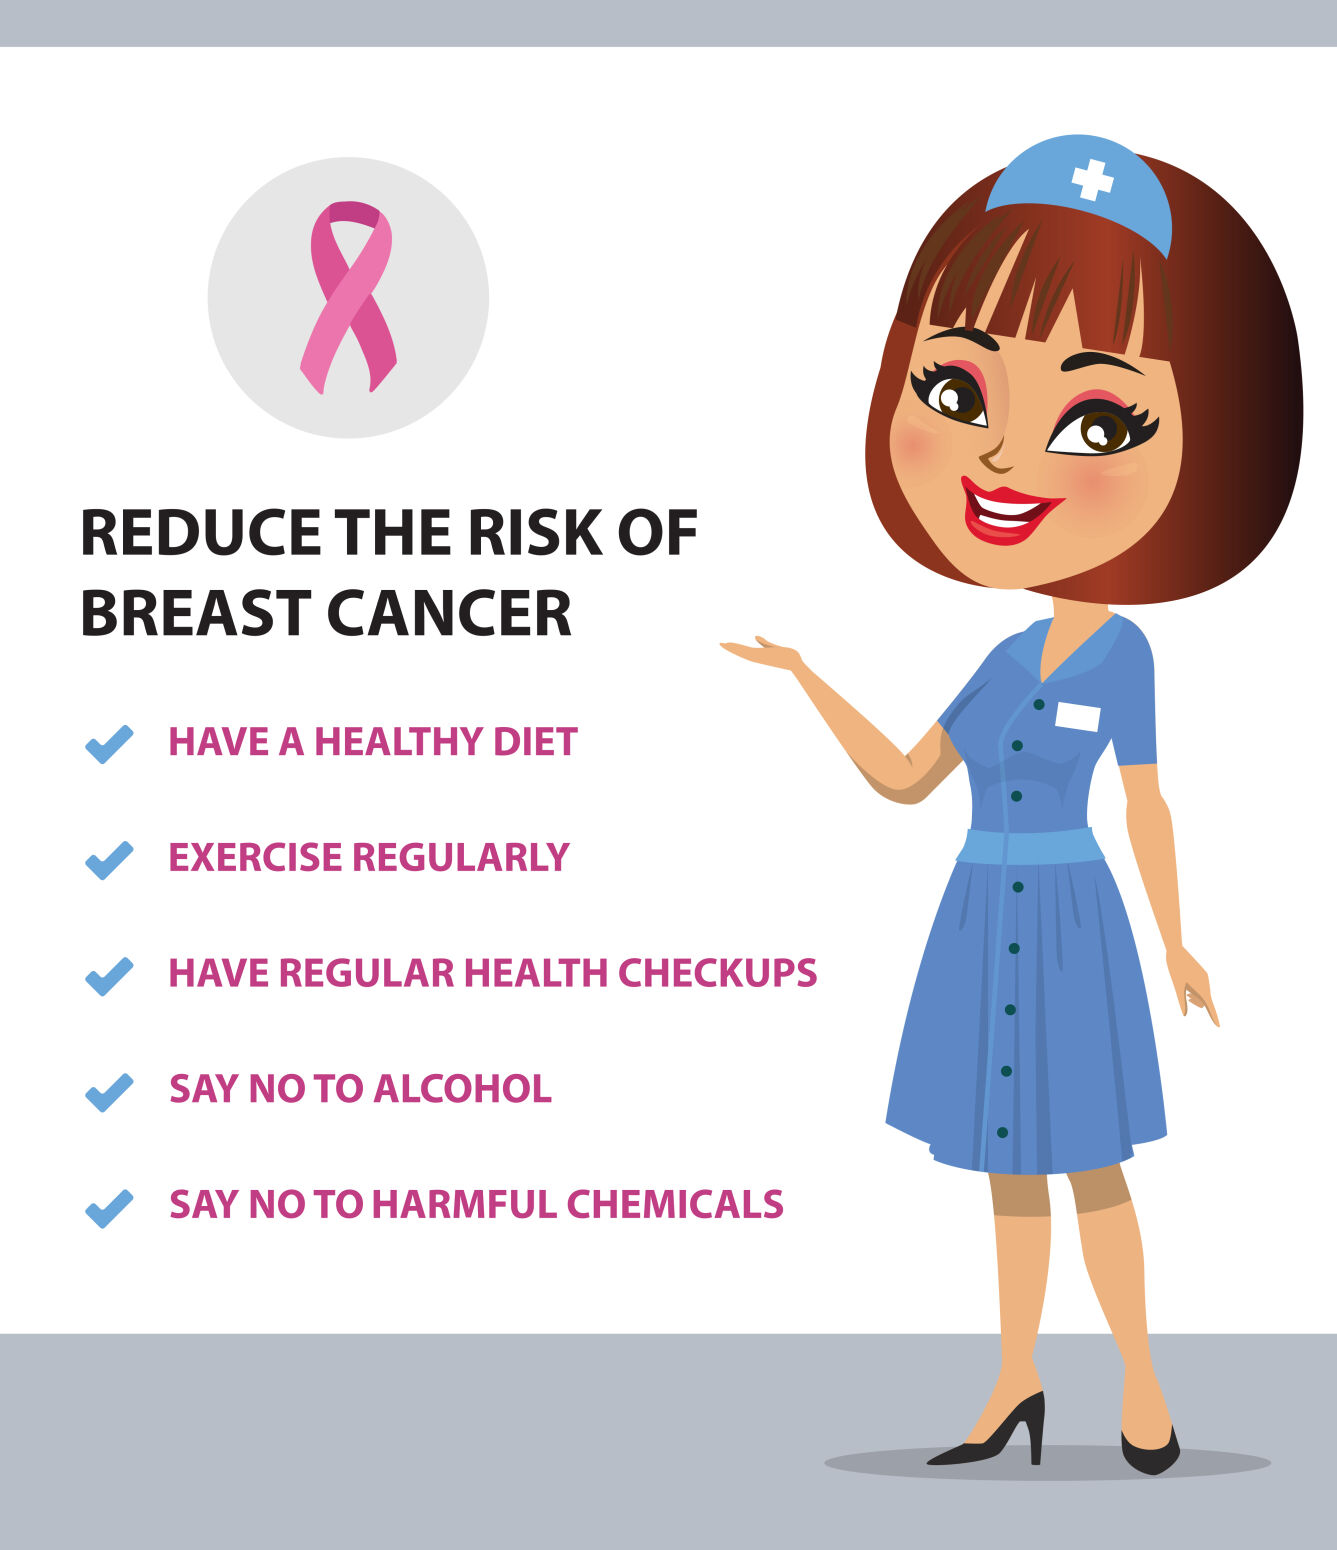 The risk factors for breast cancer